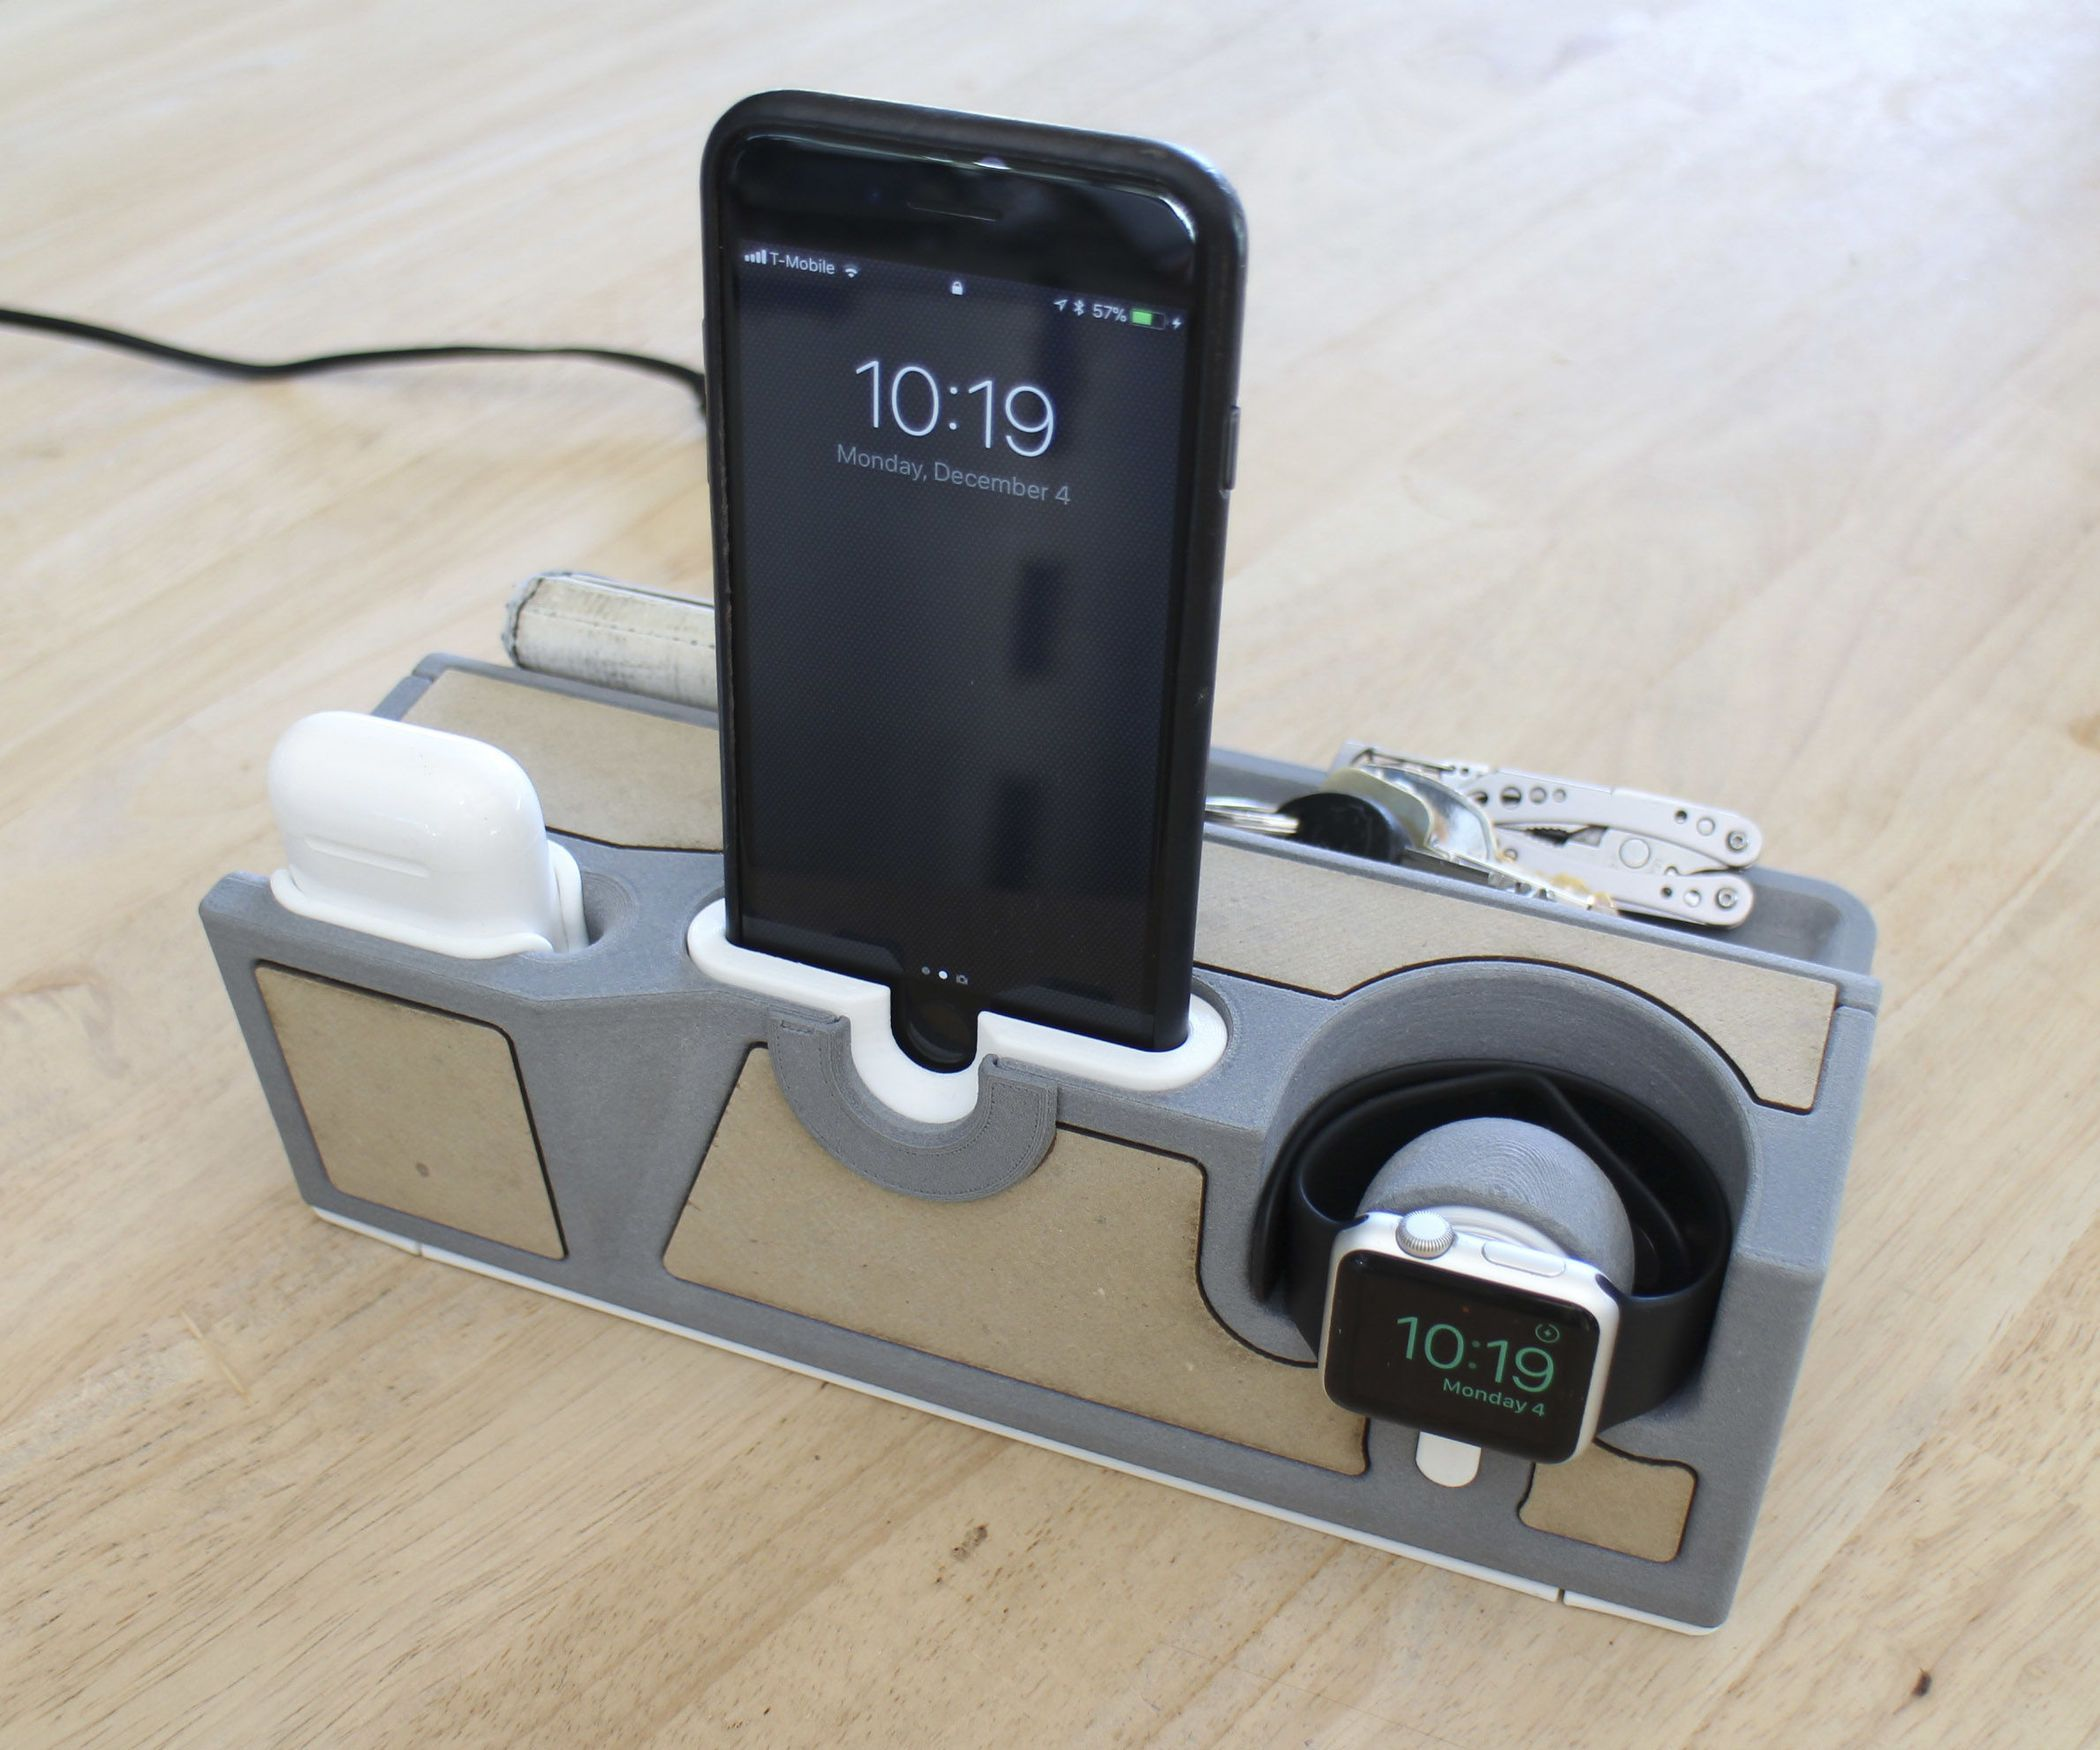 Stylish Charging Station Need A Stylish Dock For All Your Apple Things This Project Is For